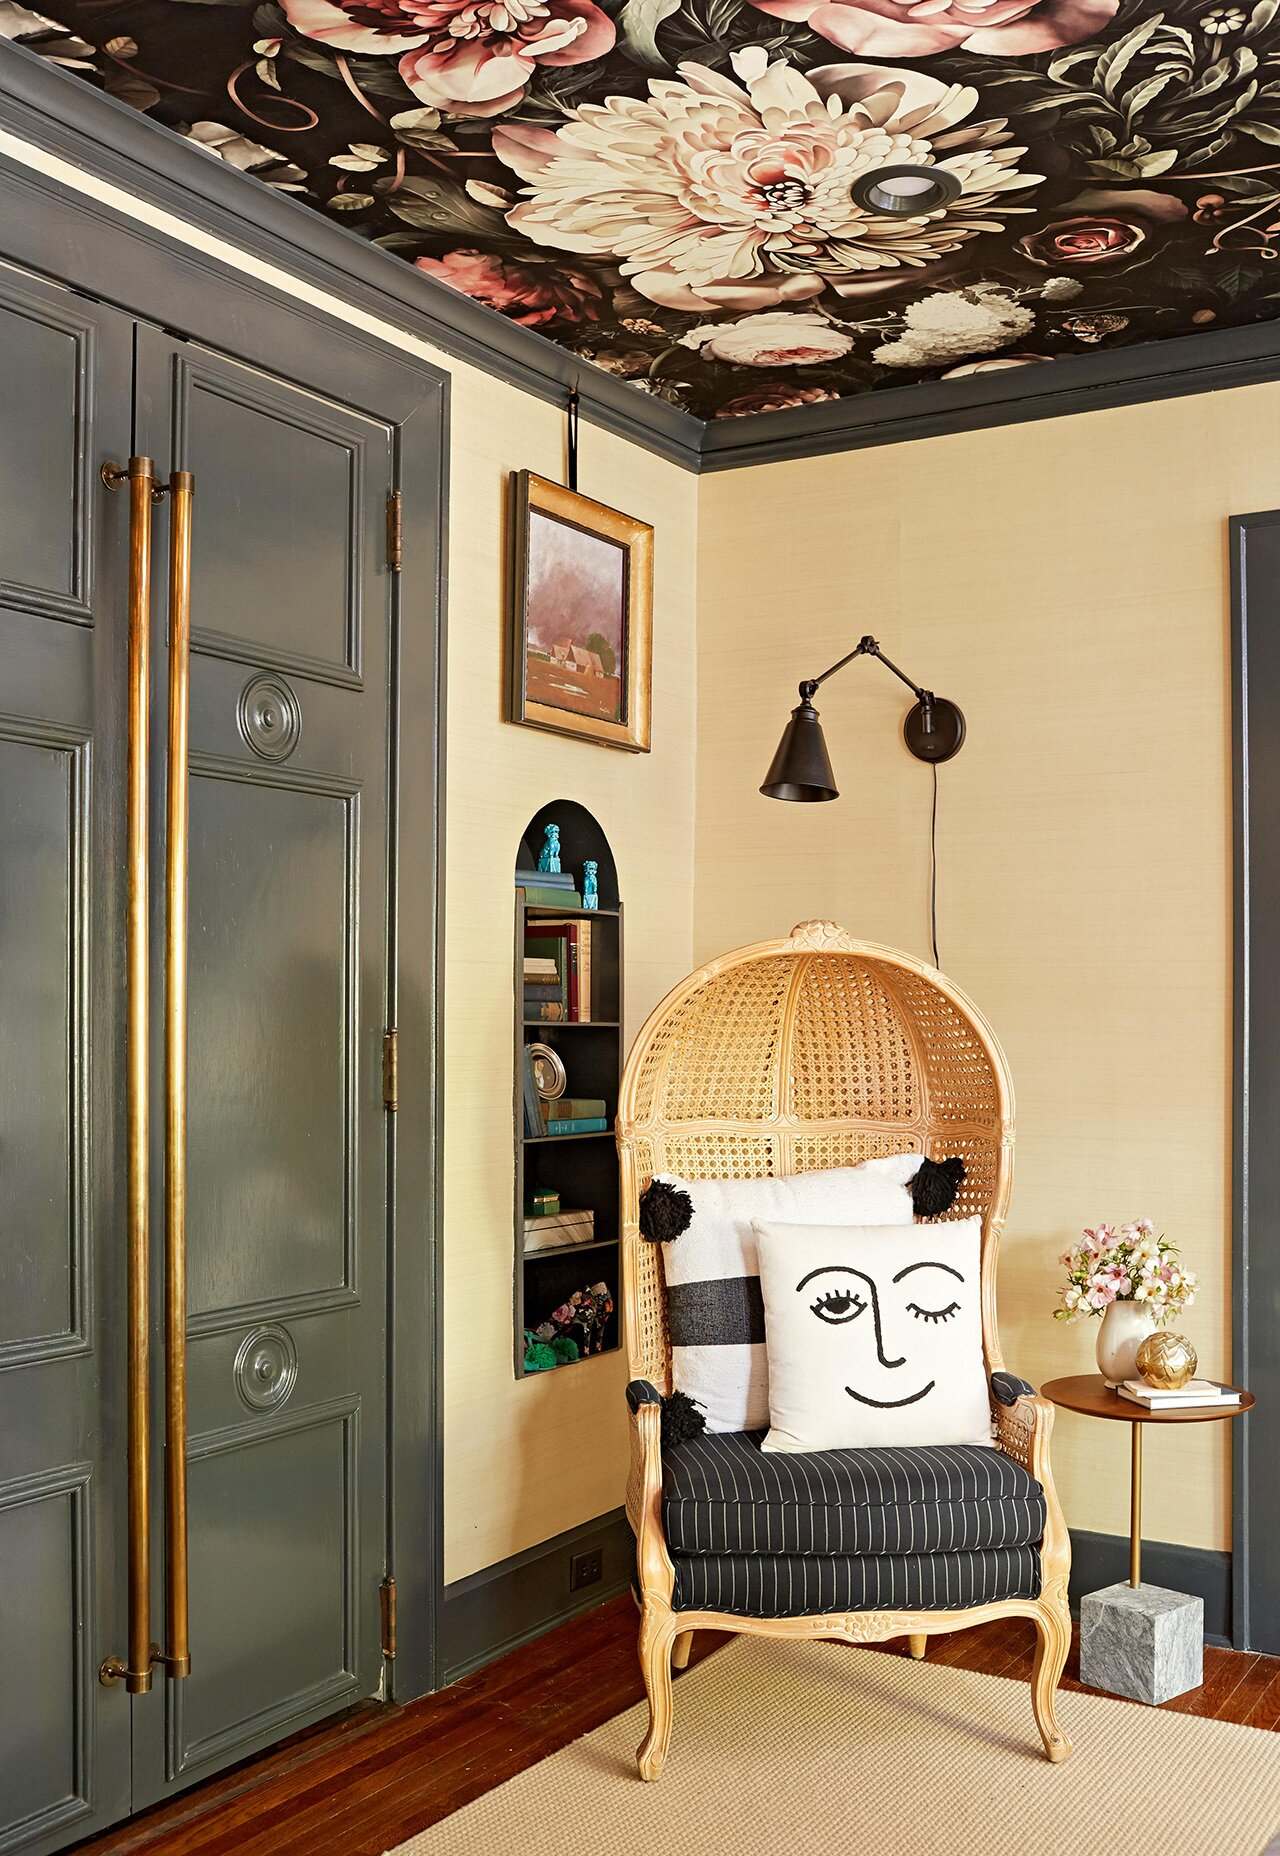 decorative caned chair in entryway